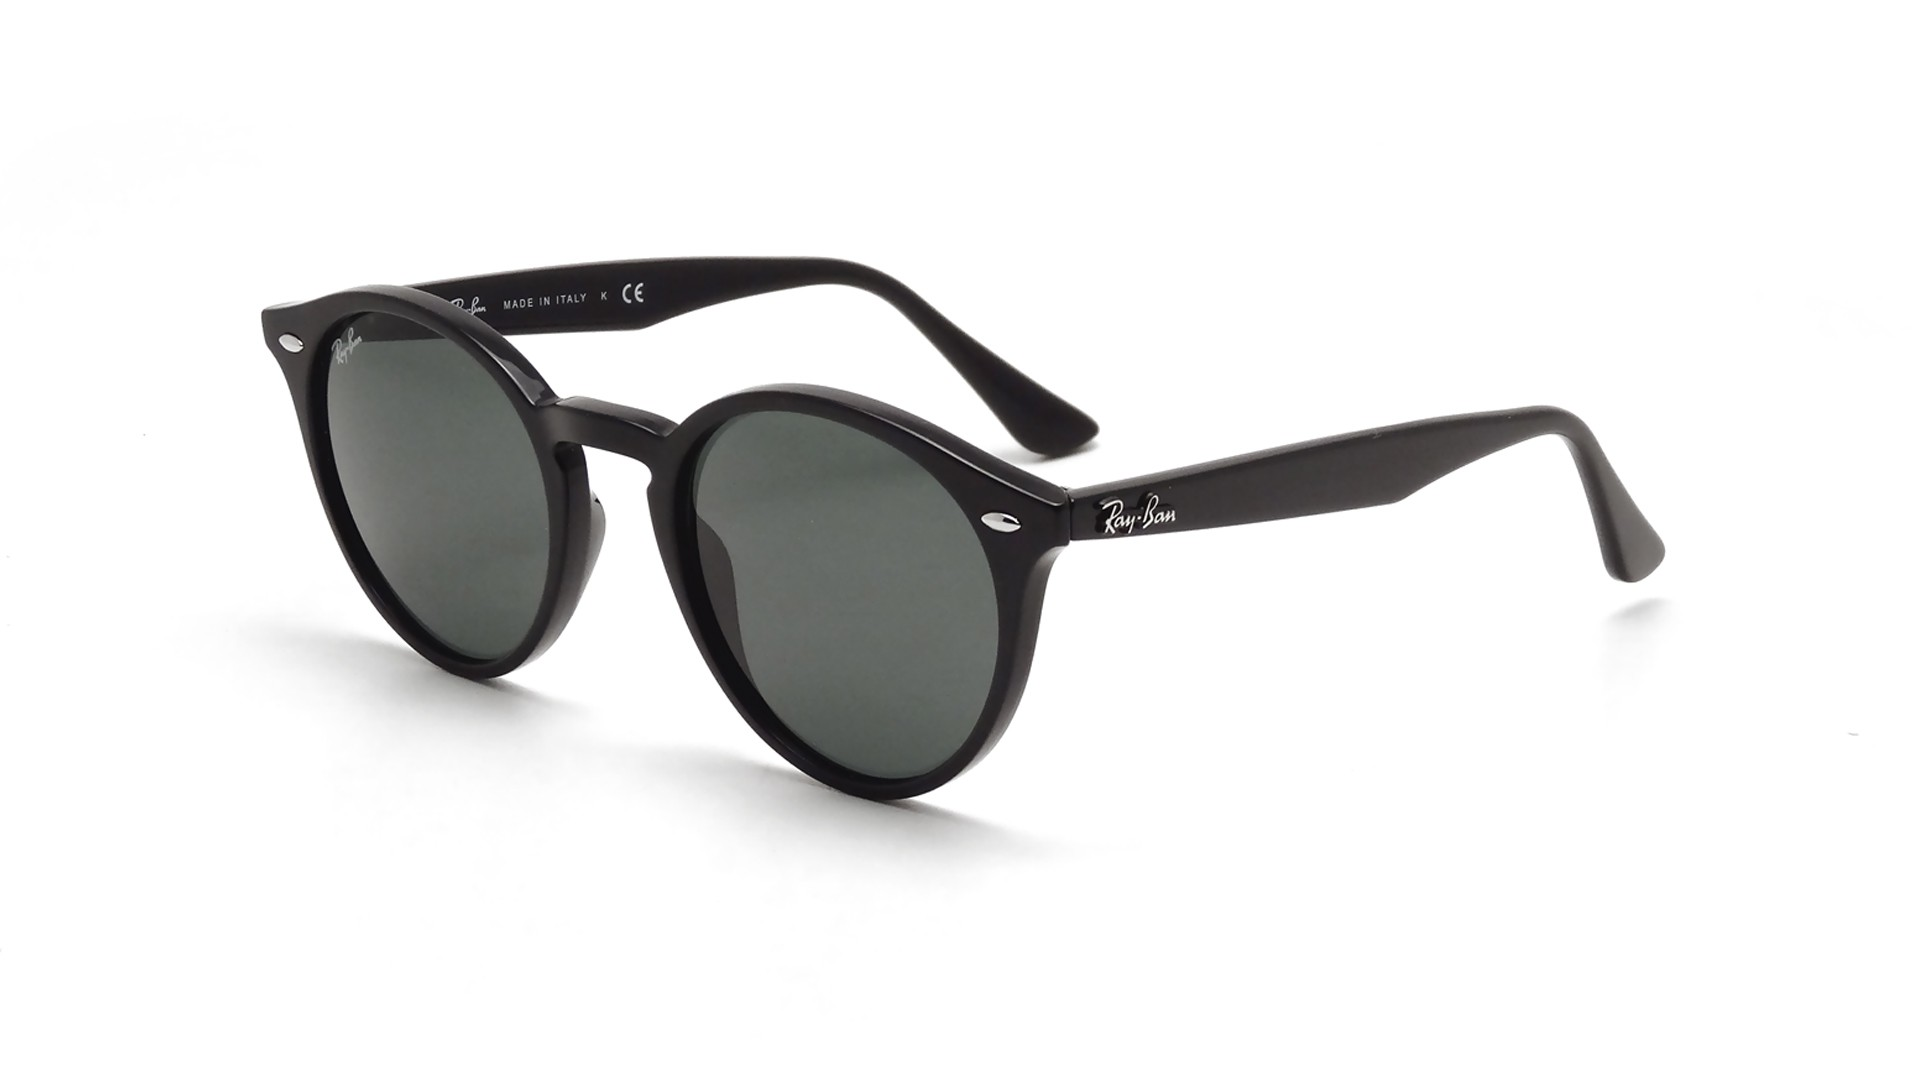 ray-ban-rb2180-601-71-49-21-black-medium